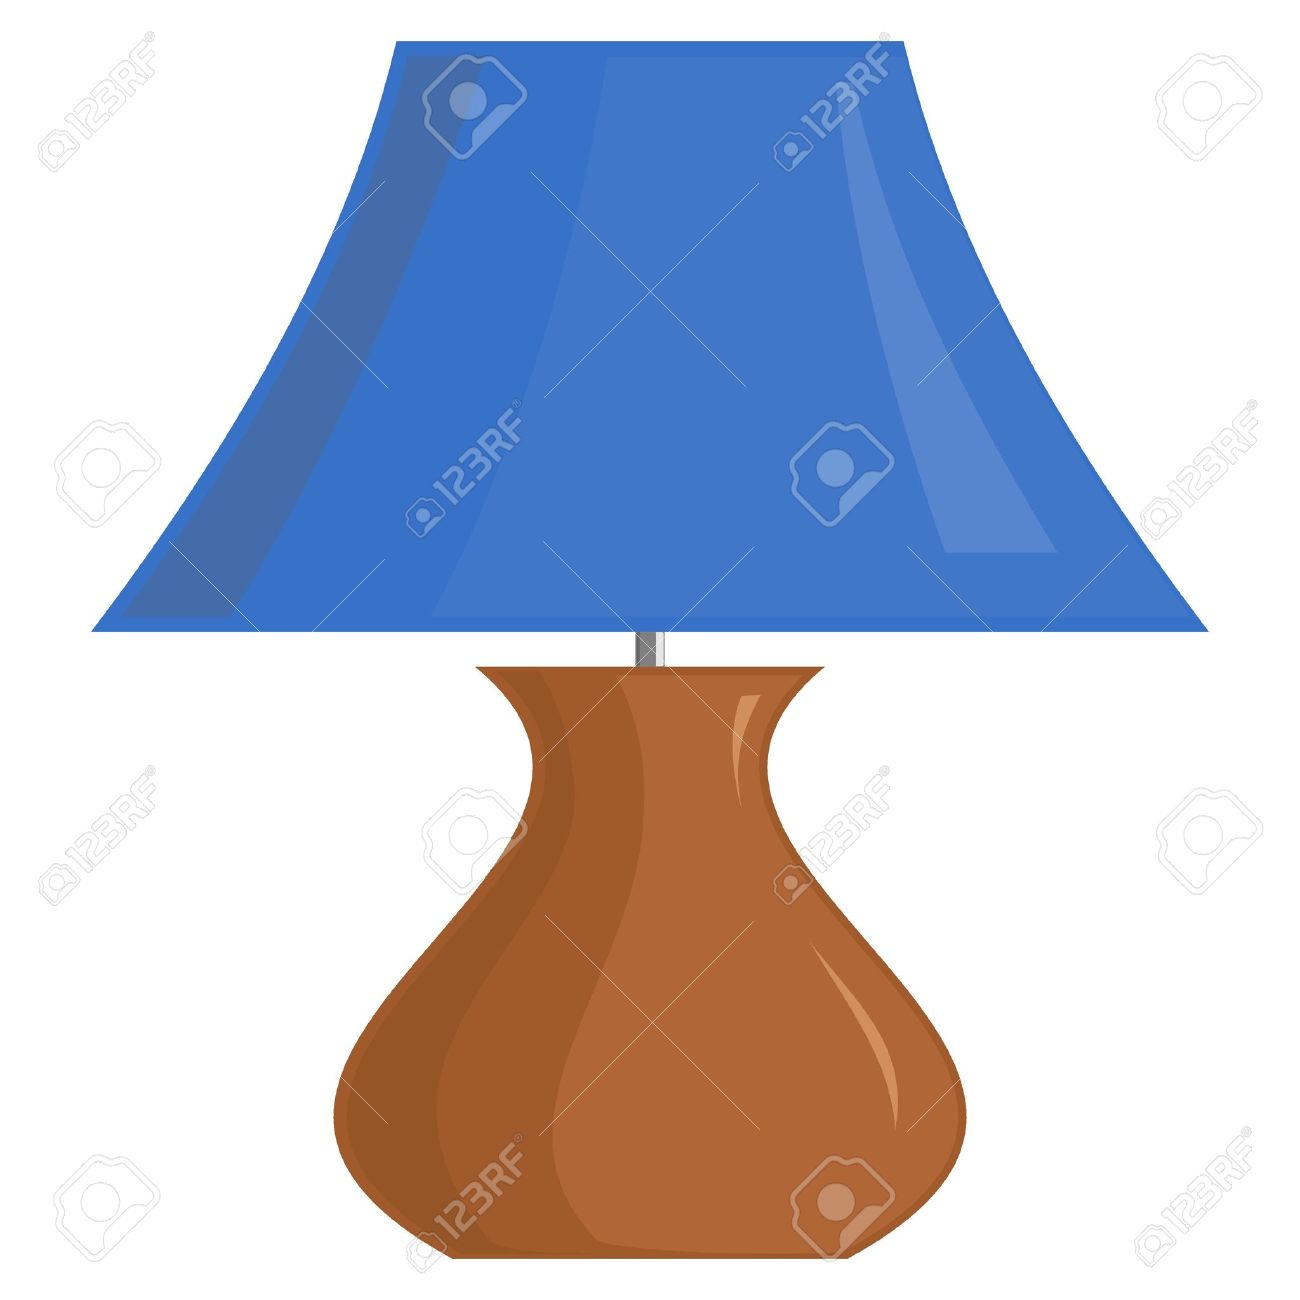 Bedroom Lampshade.